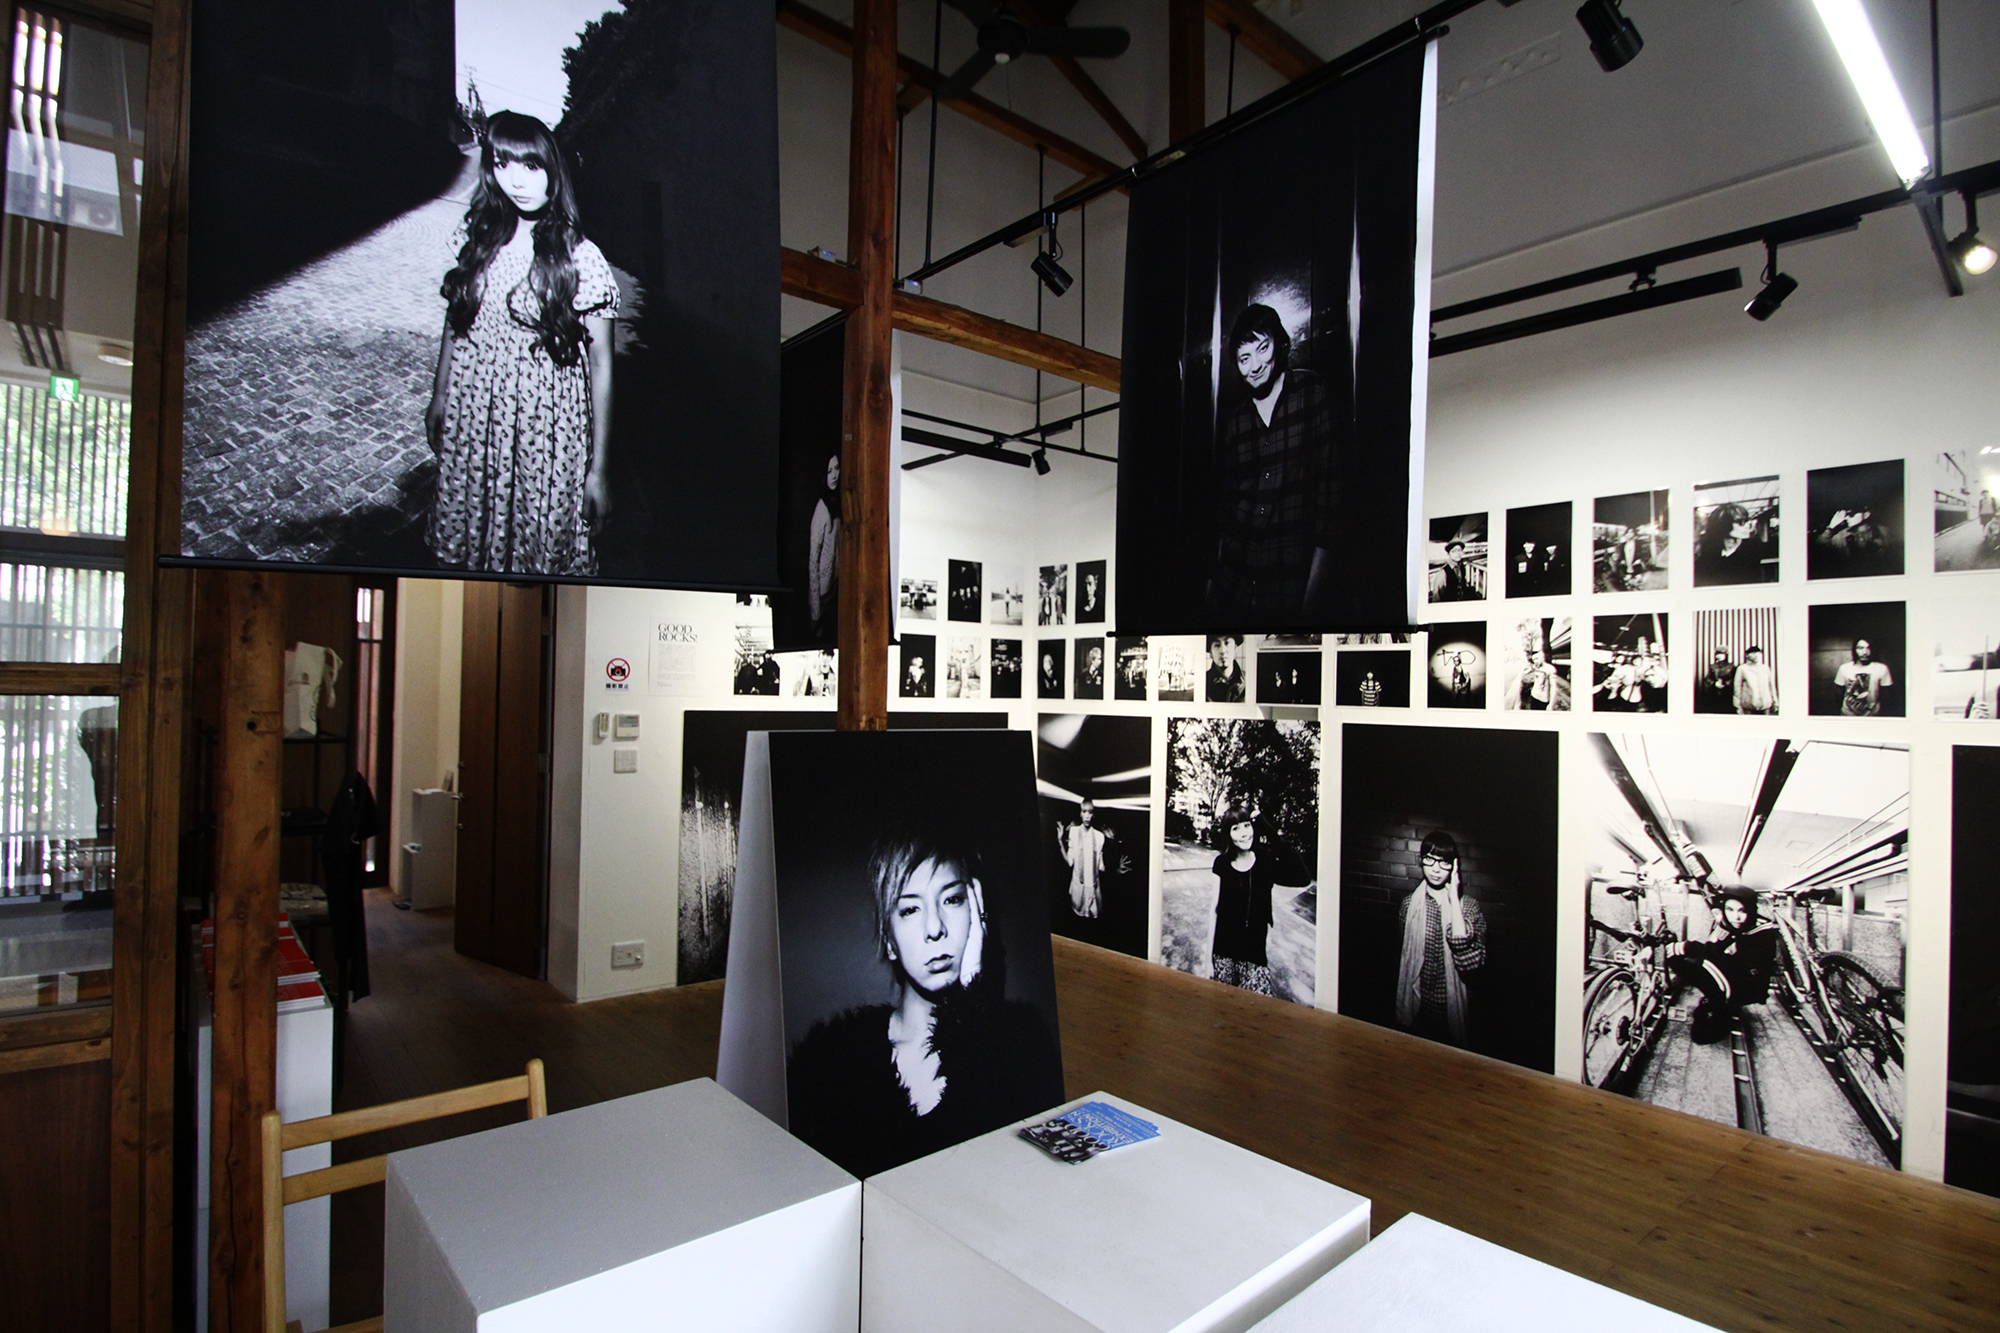 【名古屋】GOOD ROCKS! PHOTO EXHIBITION  PHOTOGRAPHED BY HIROSUKE FUKUMOTO IN NAGOYA